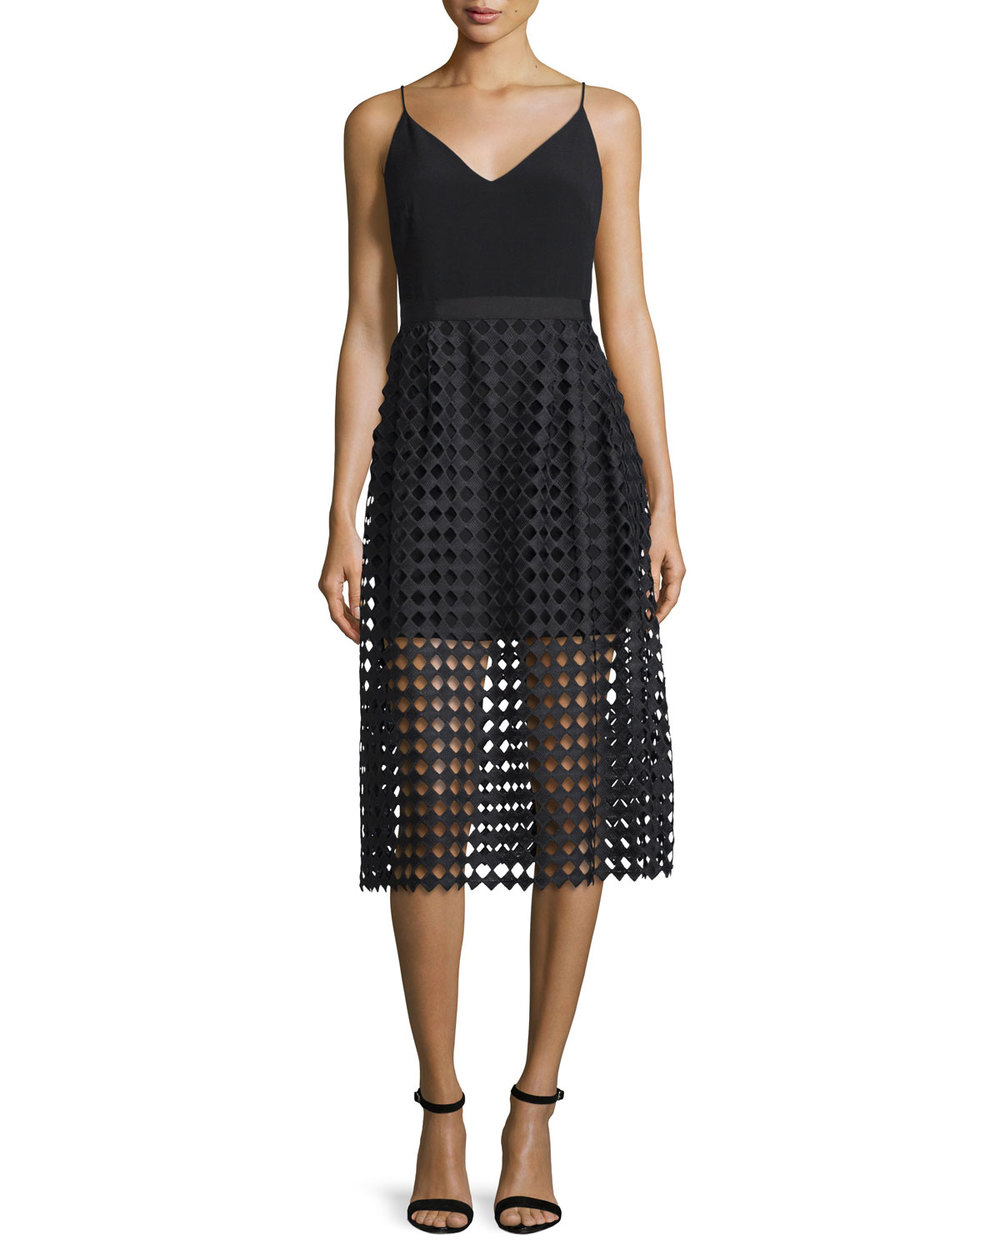 Cynthia Rowley Sleeveless Mesh-Overlay Midi Dress, Black • $190.40 • Neiman Marcus